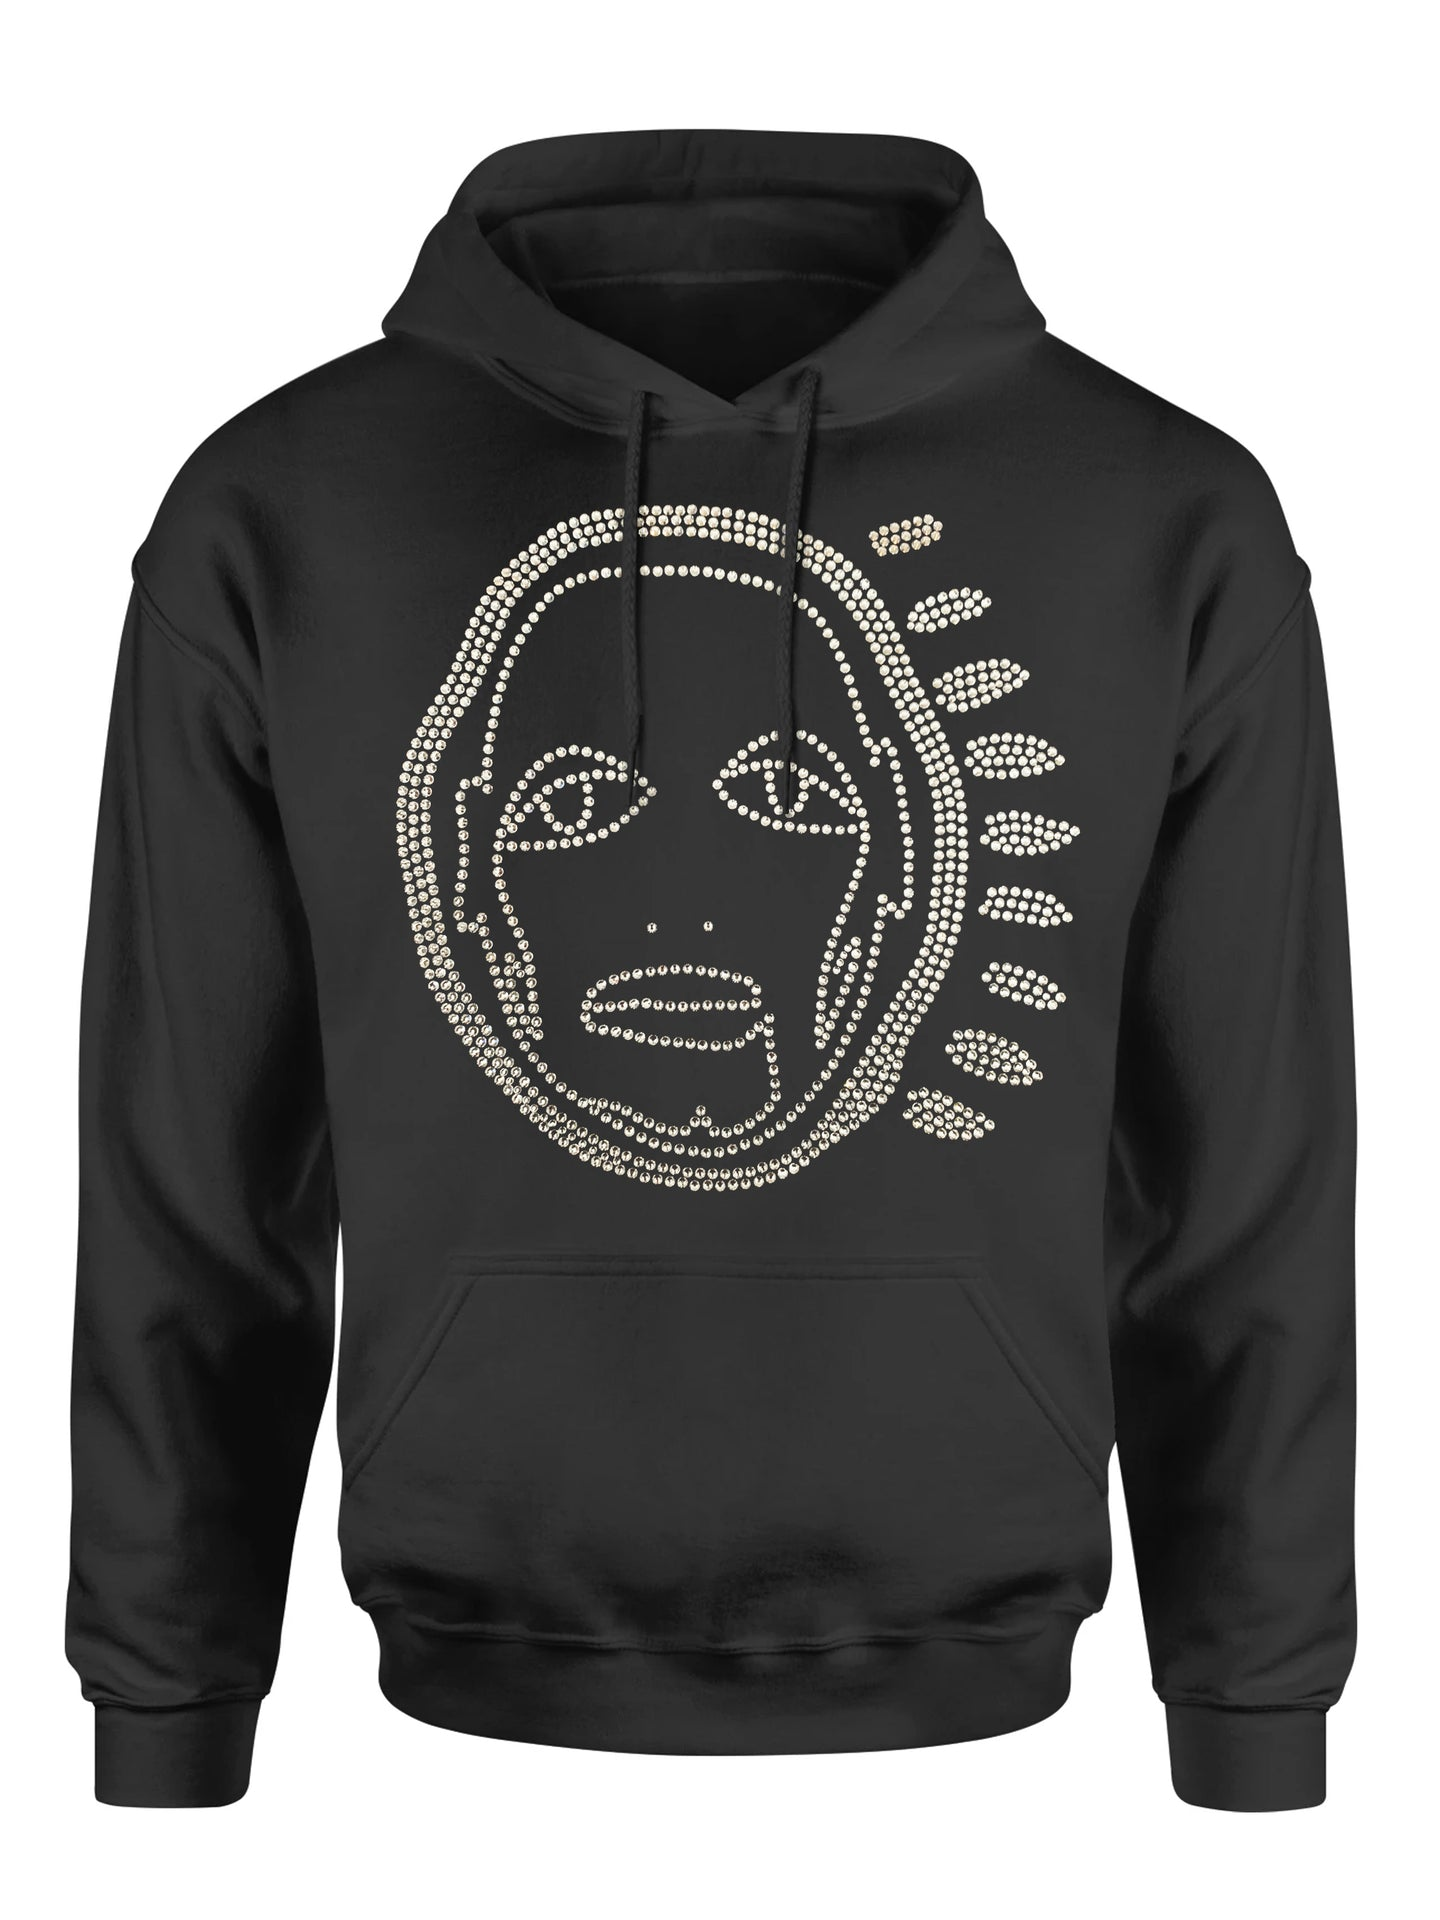 'ALL OVER YOU' CRYSTAL HOODIE - Patrick Church